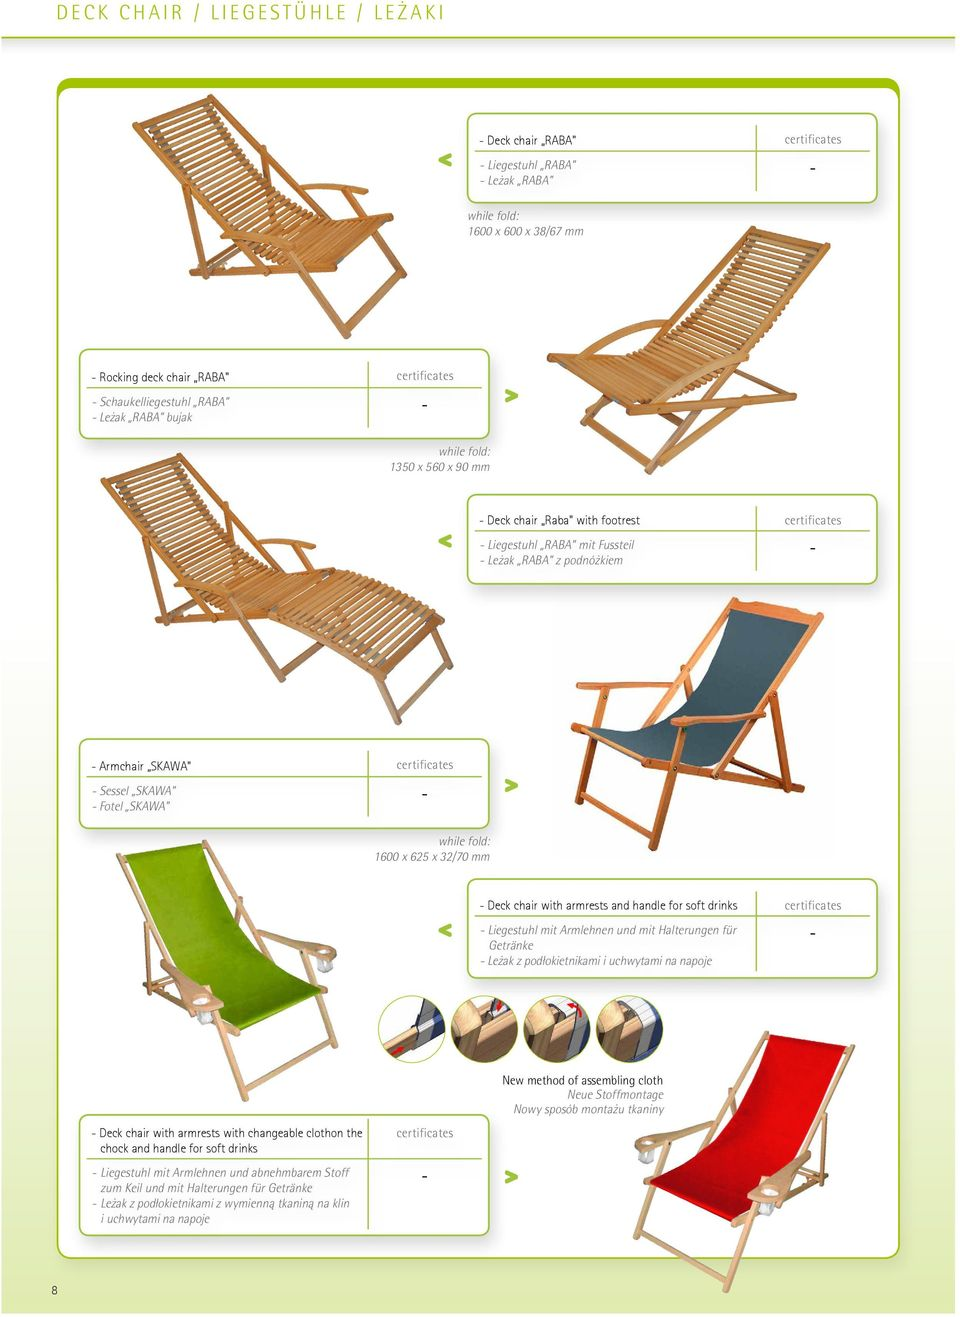 "changeable cloth (new version) Step 1 certificates Armchair SKAWA"" Instruction of assembling cloth in deck chair in deck chair with changeable cloth (new version) Sessel SKAWA Fotel SKAWA Step 2 Step"